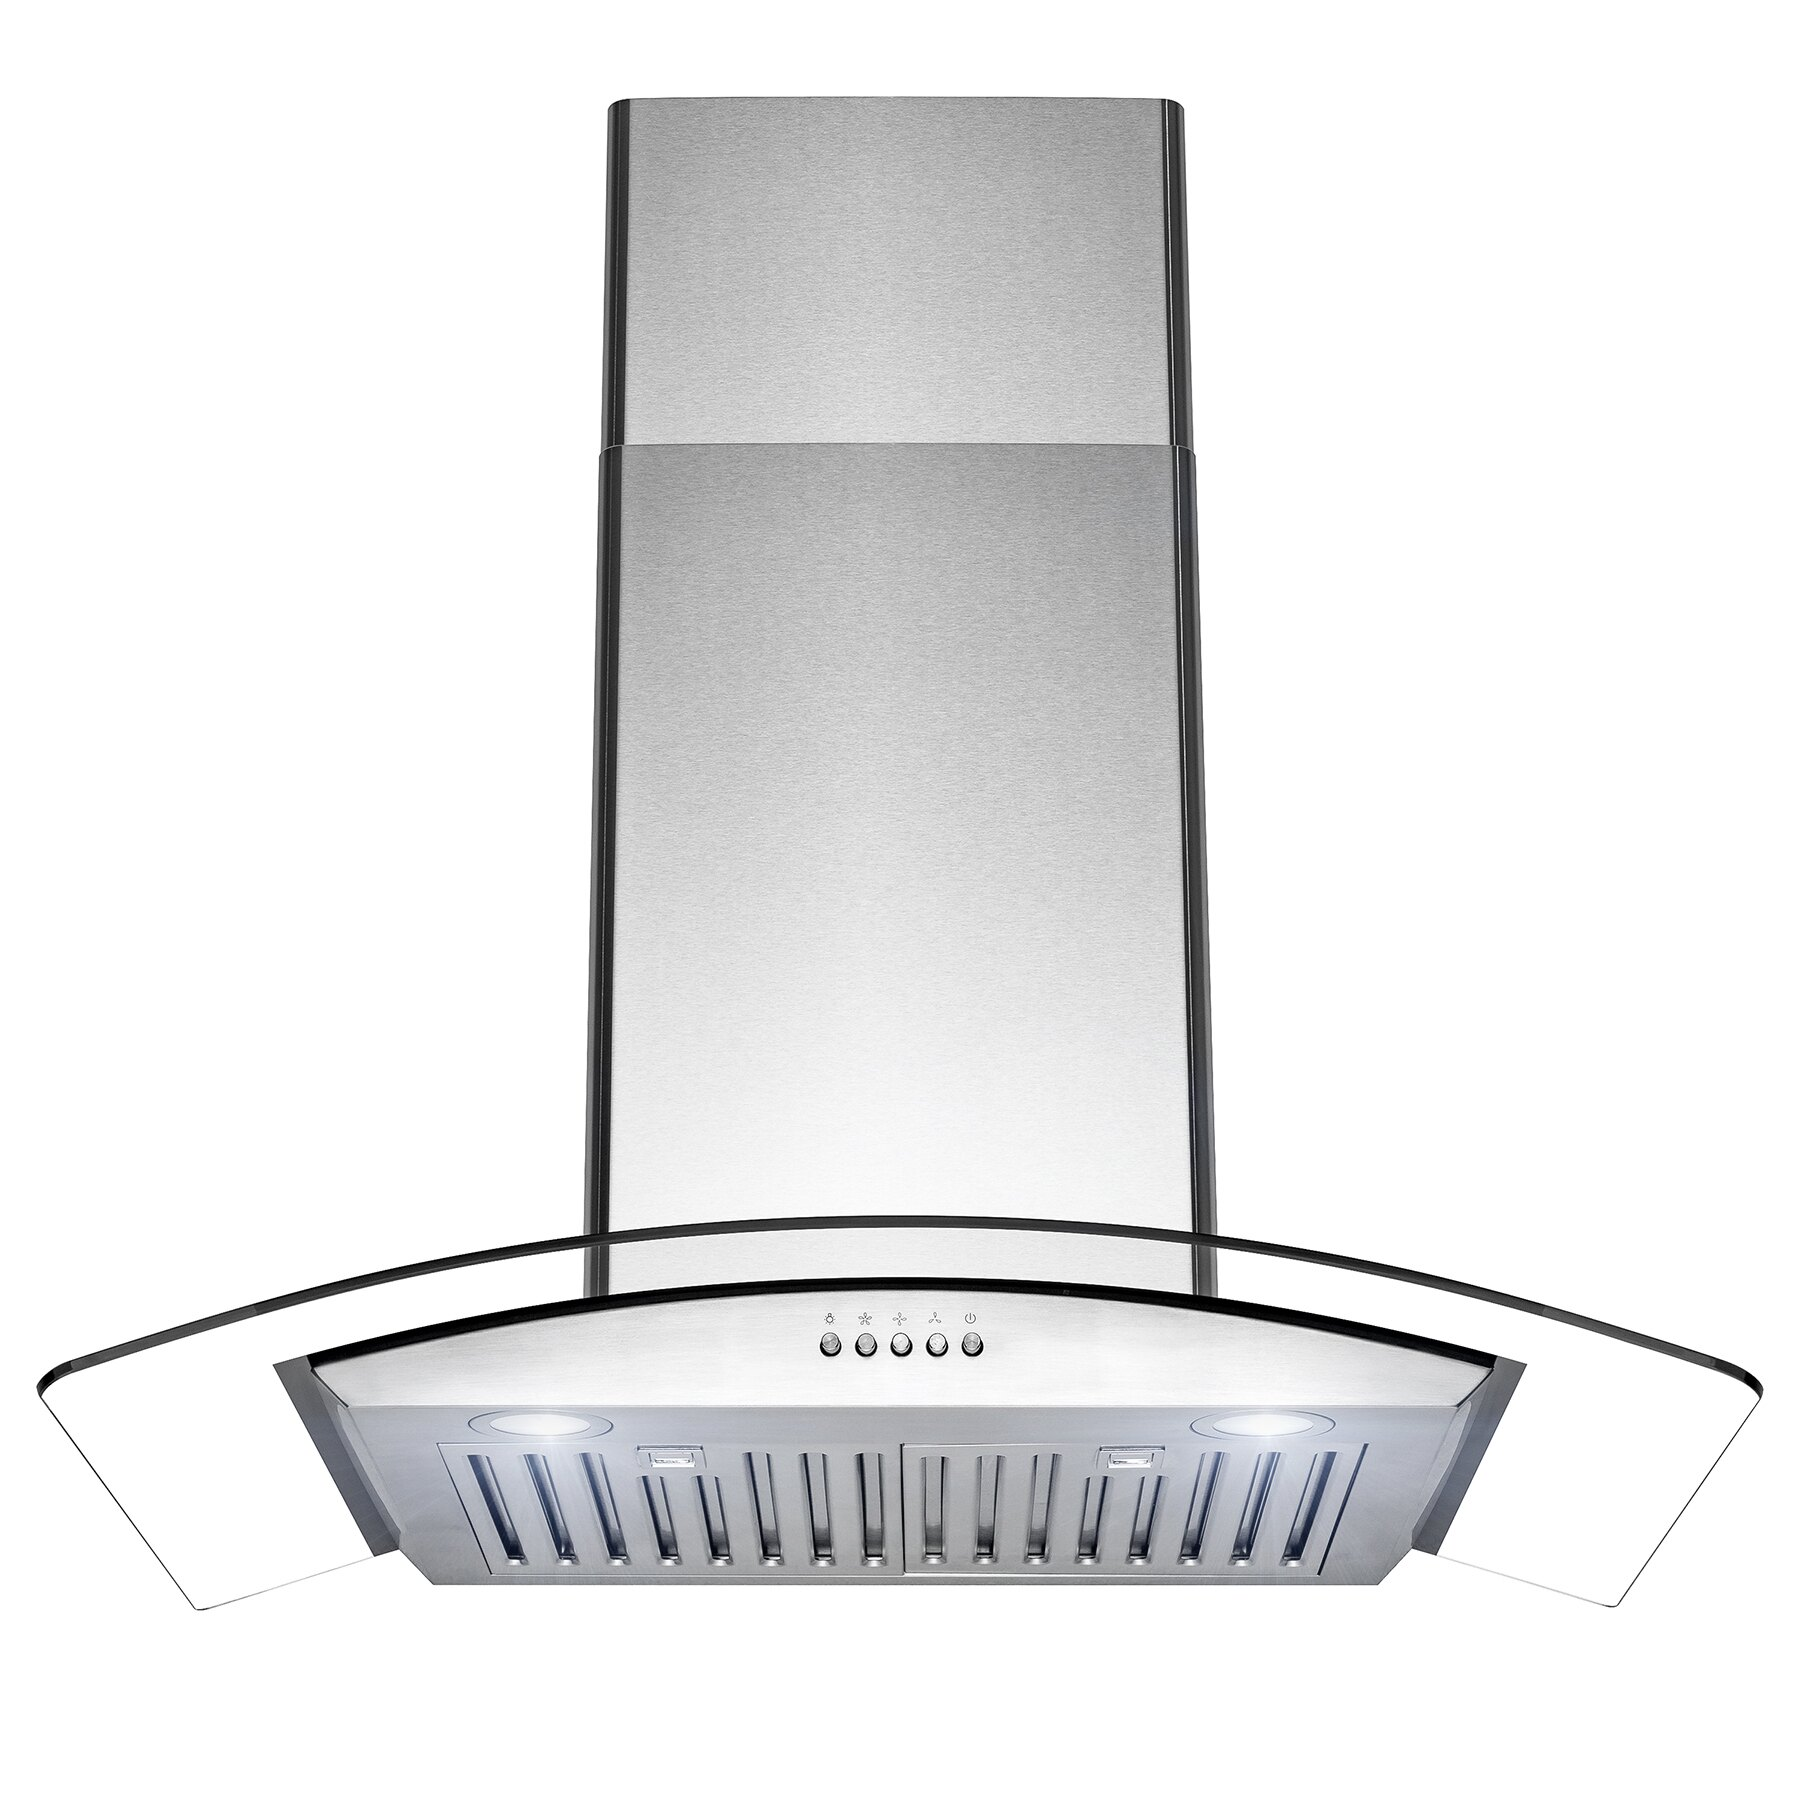 """AKDY 30"""" Wall Mount Stainless Steel Tempered Glass Push Panel Kitchen Range Hood Cooking Fan 0"""